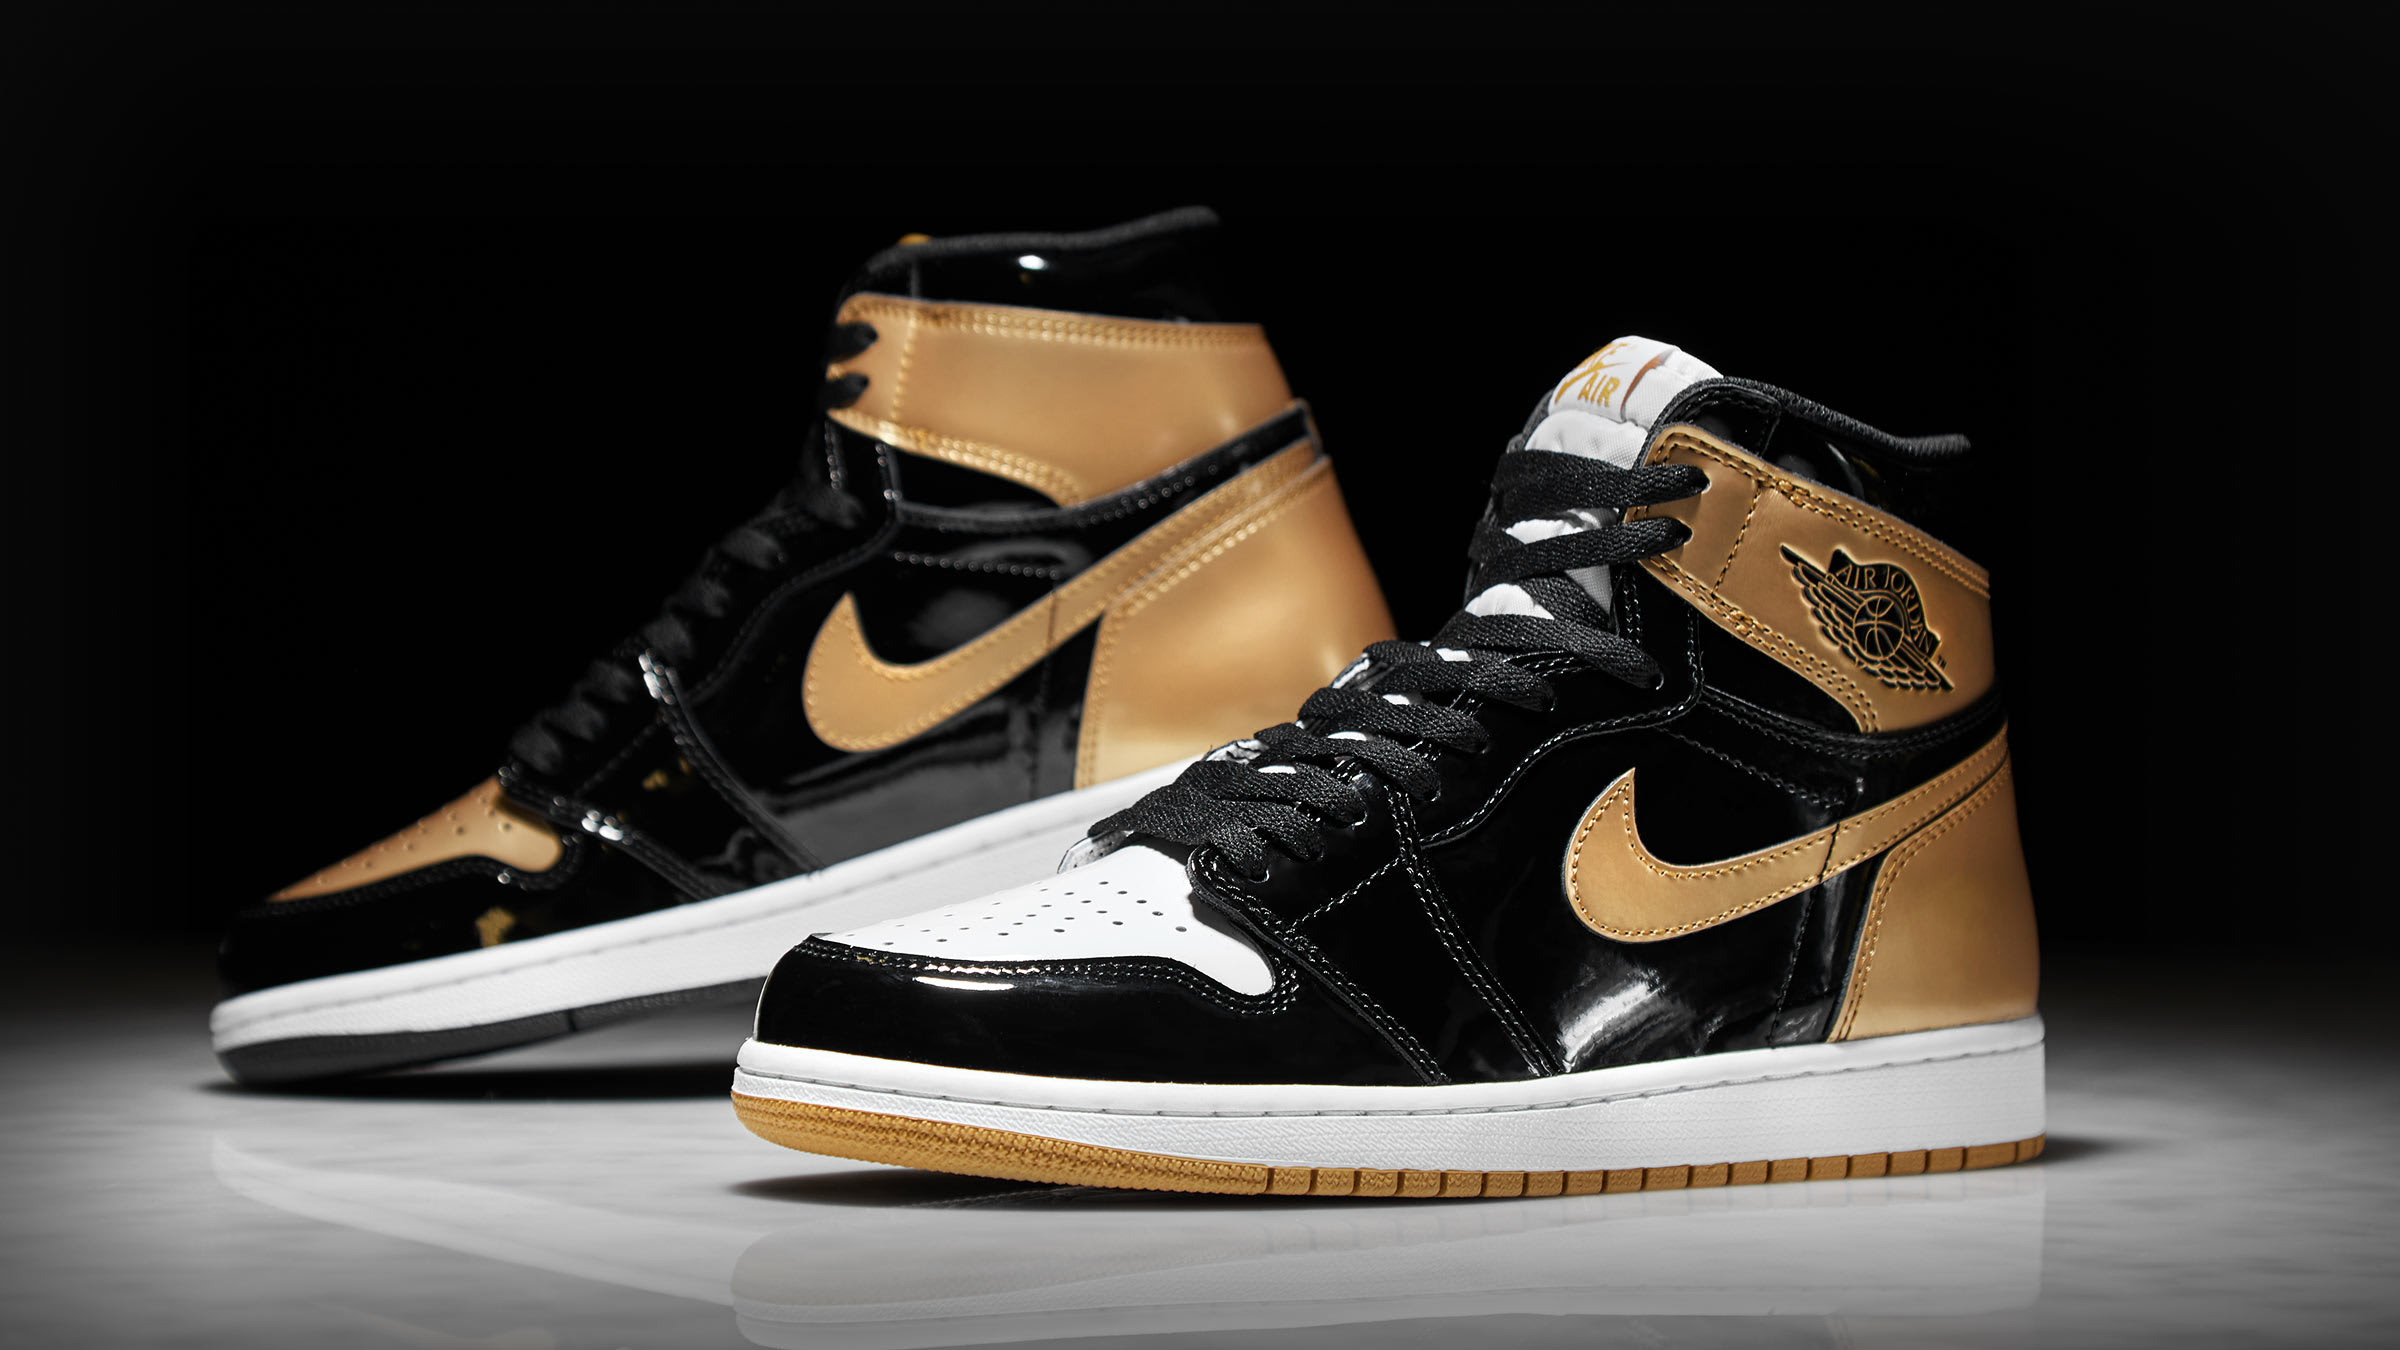 END. Features | Nike Air Jordan 1 Retro High OG Energy 'Gold